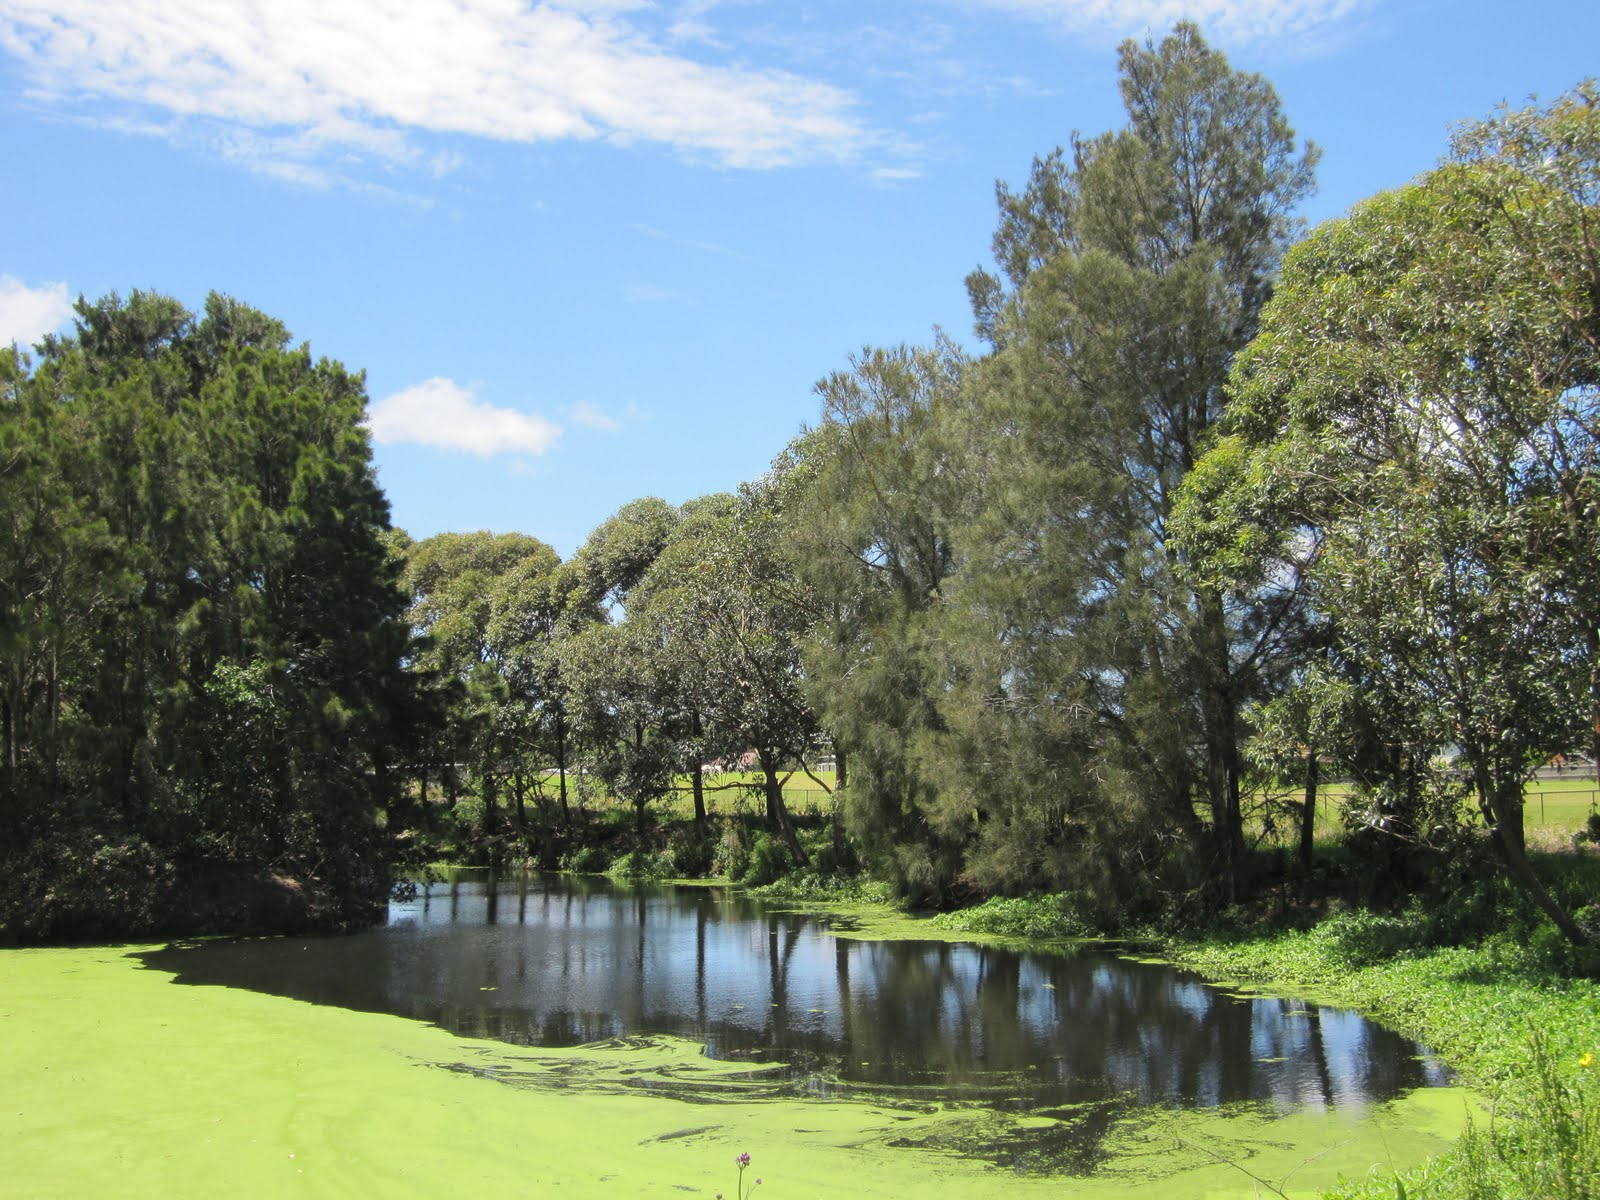 I Was Driving Past Bicentennial Park At Rockdale Last Week And Noticed That These Algal Blooms Have Covered A Large Proportion Of The Ponds Here